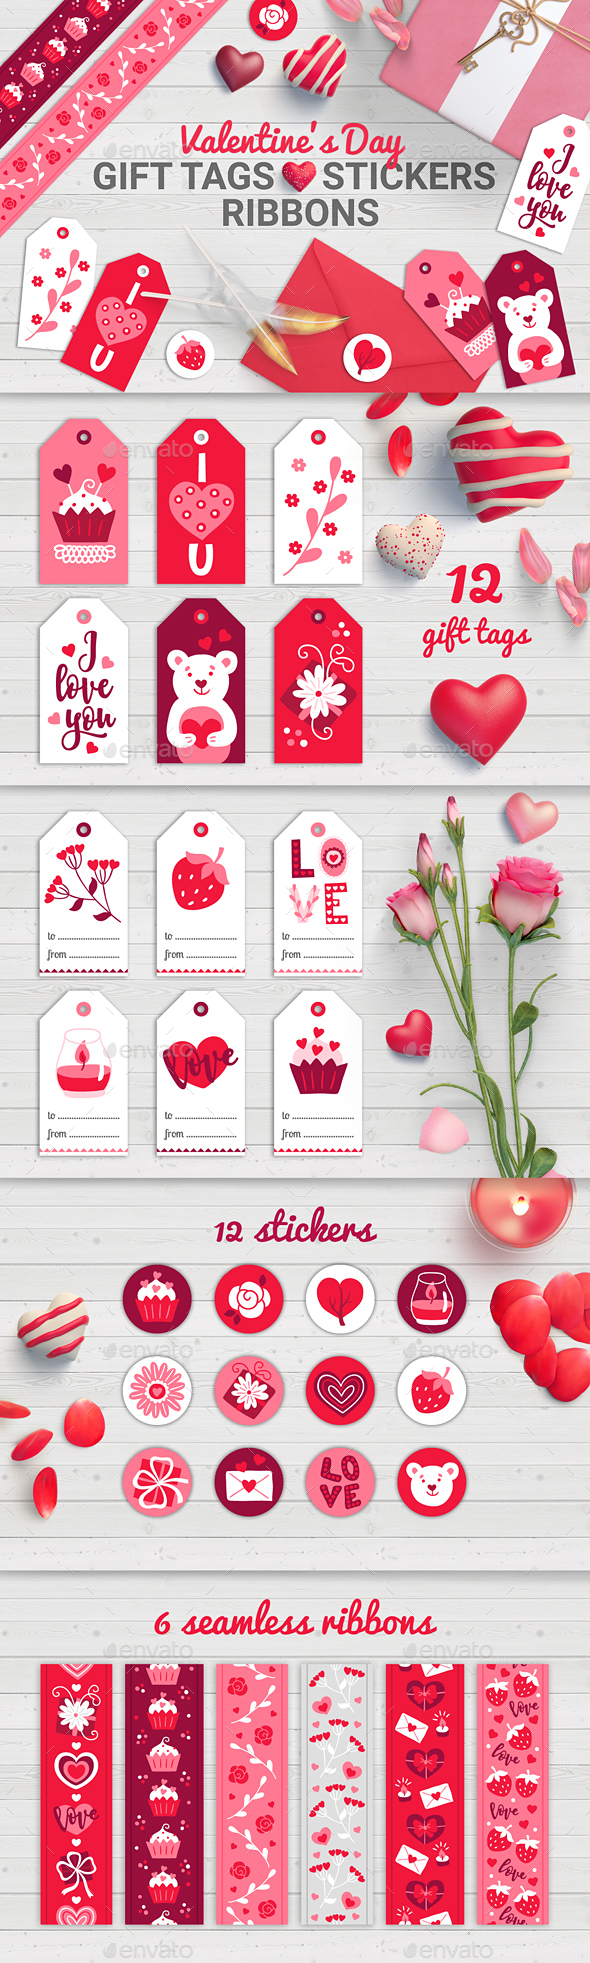 Valentine Gift Tags, Stickers, Ribbons - Valentines Seasons/Holidays